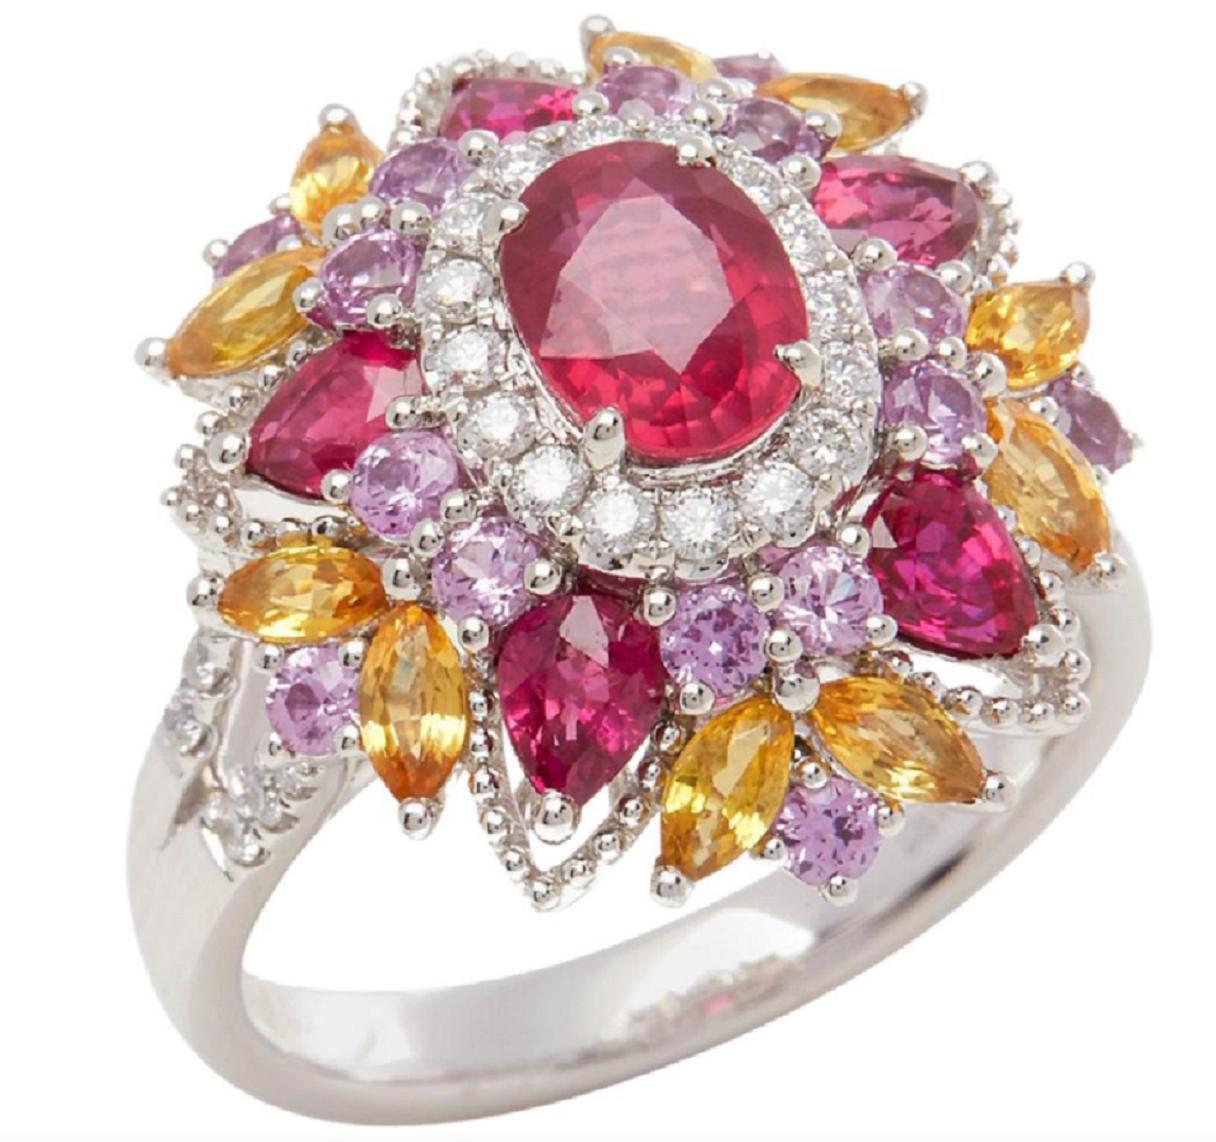 Best massive bling rings 2021 Glittering Platinum with Ruby, Diamond, Pink and Yellow Sapphire Cluster Ring